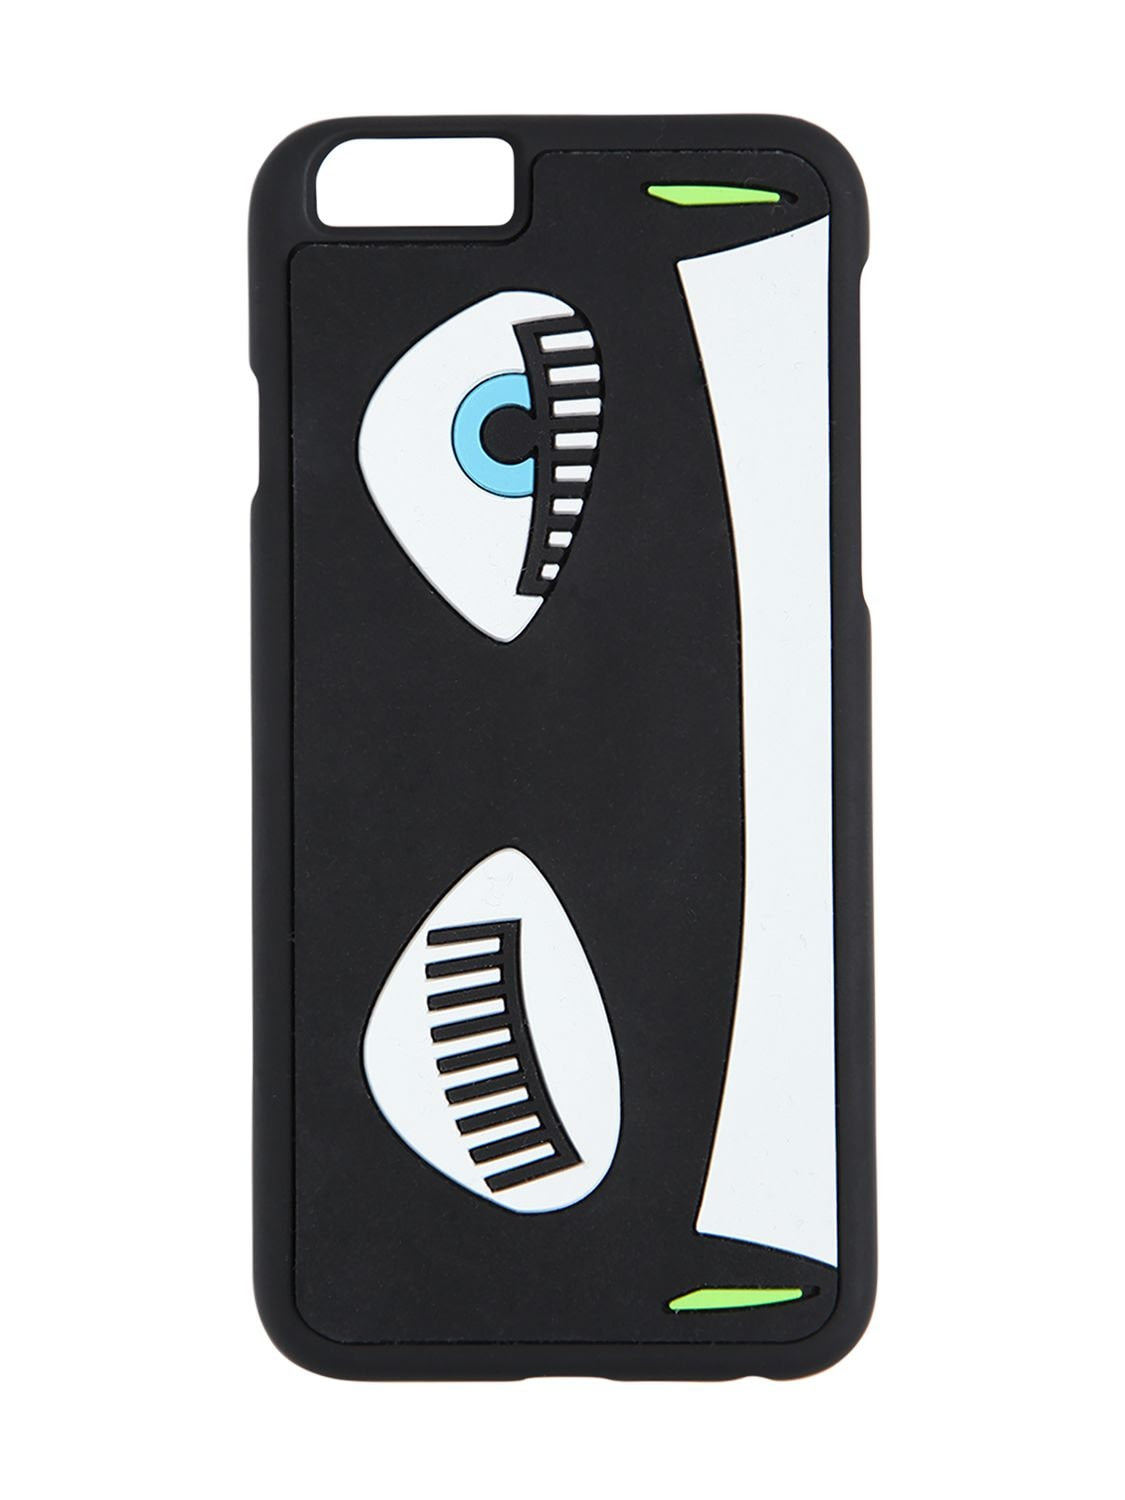 FLIRTING IPHONE CASE